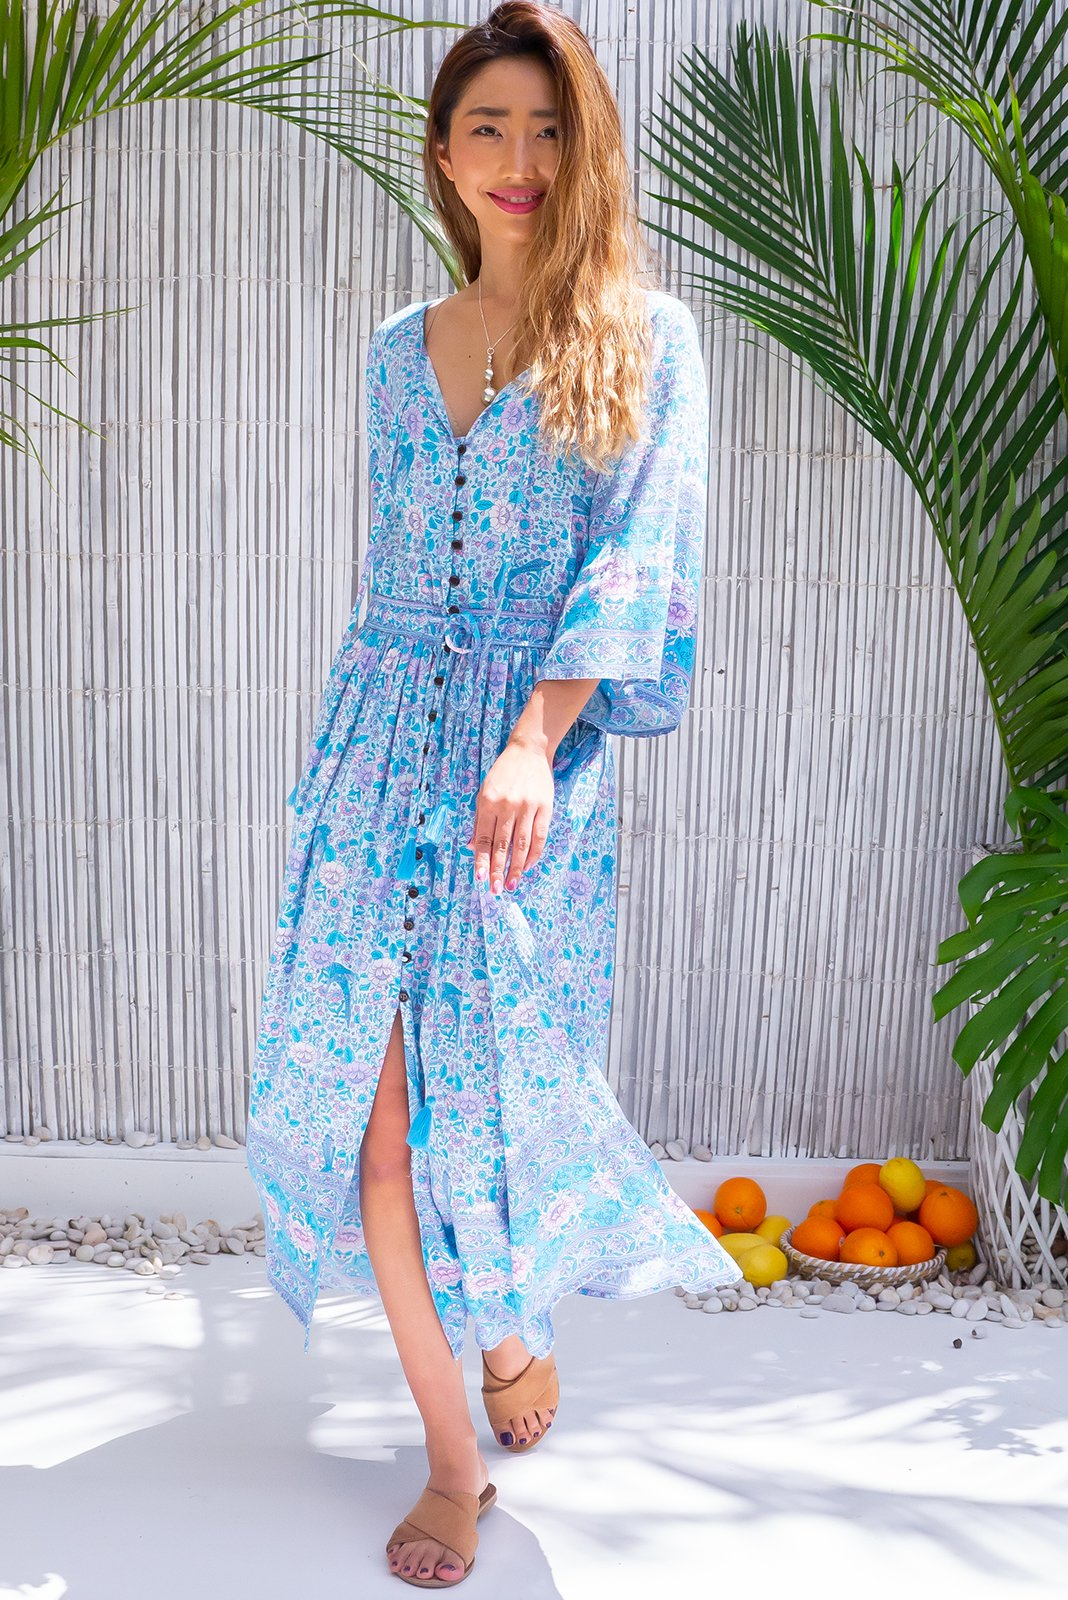 Feel the bohemian vibe in Delilah Skies Dress featuring 3/4 wide sleeves, neck tie detail, functional button front., drawstring waist, soft blue base with folk/bohemian print in blues and lilacs. in woven 100% rayon.